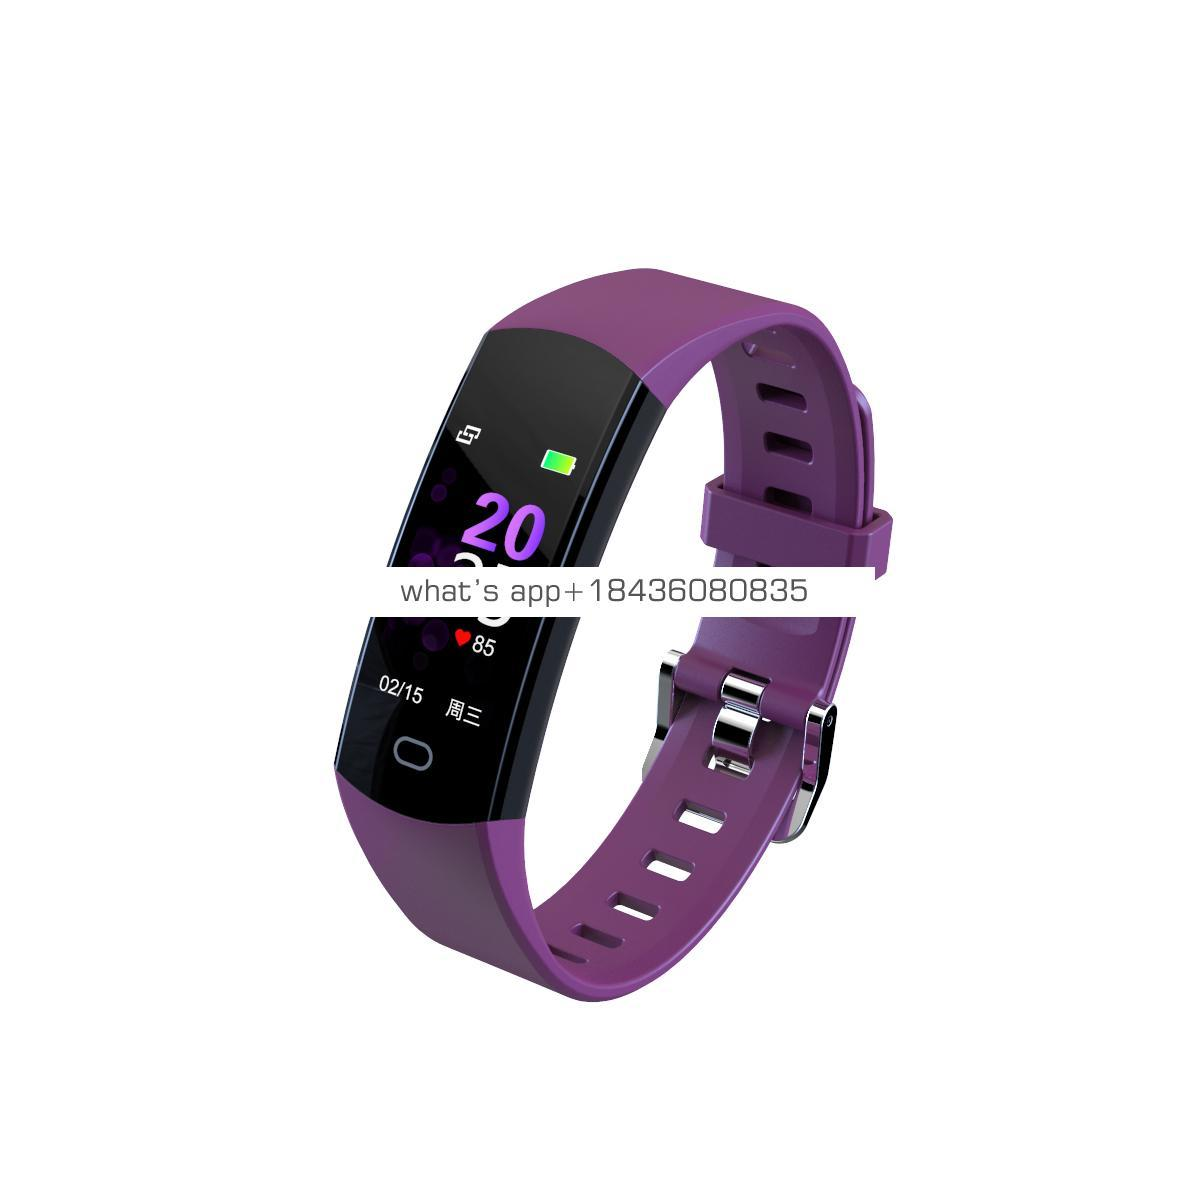 New design android waterproof 30m heart rate blood pressure large screen smart watch long standby usb charge for excise